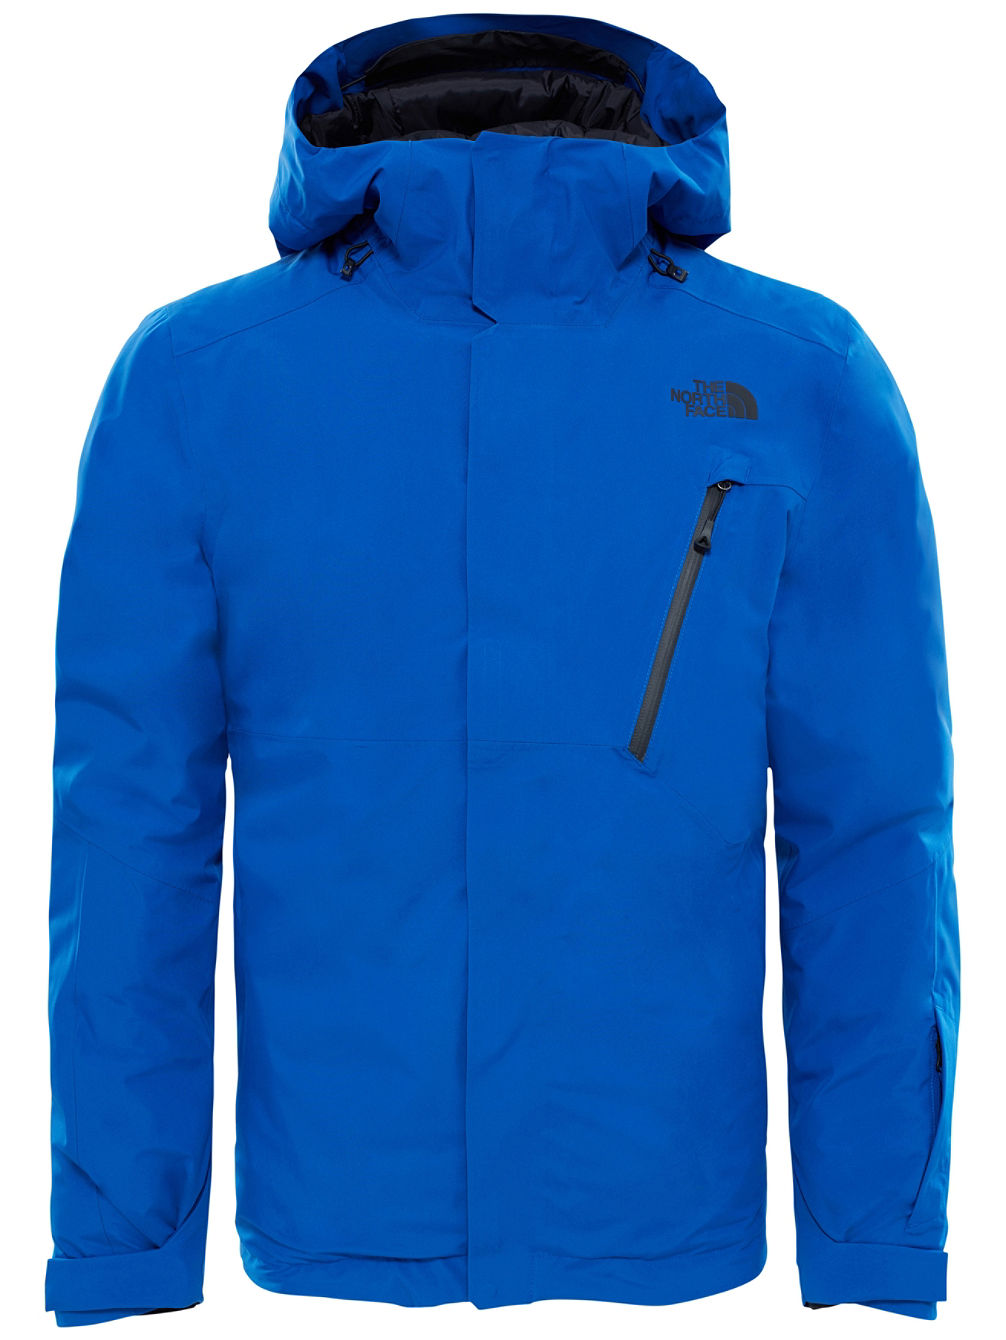 Descendit Jacket